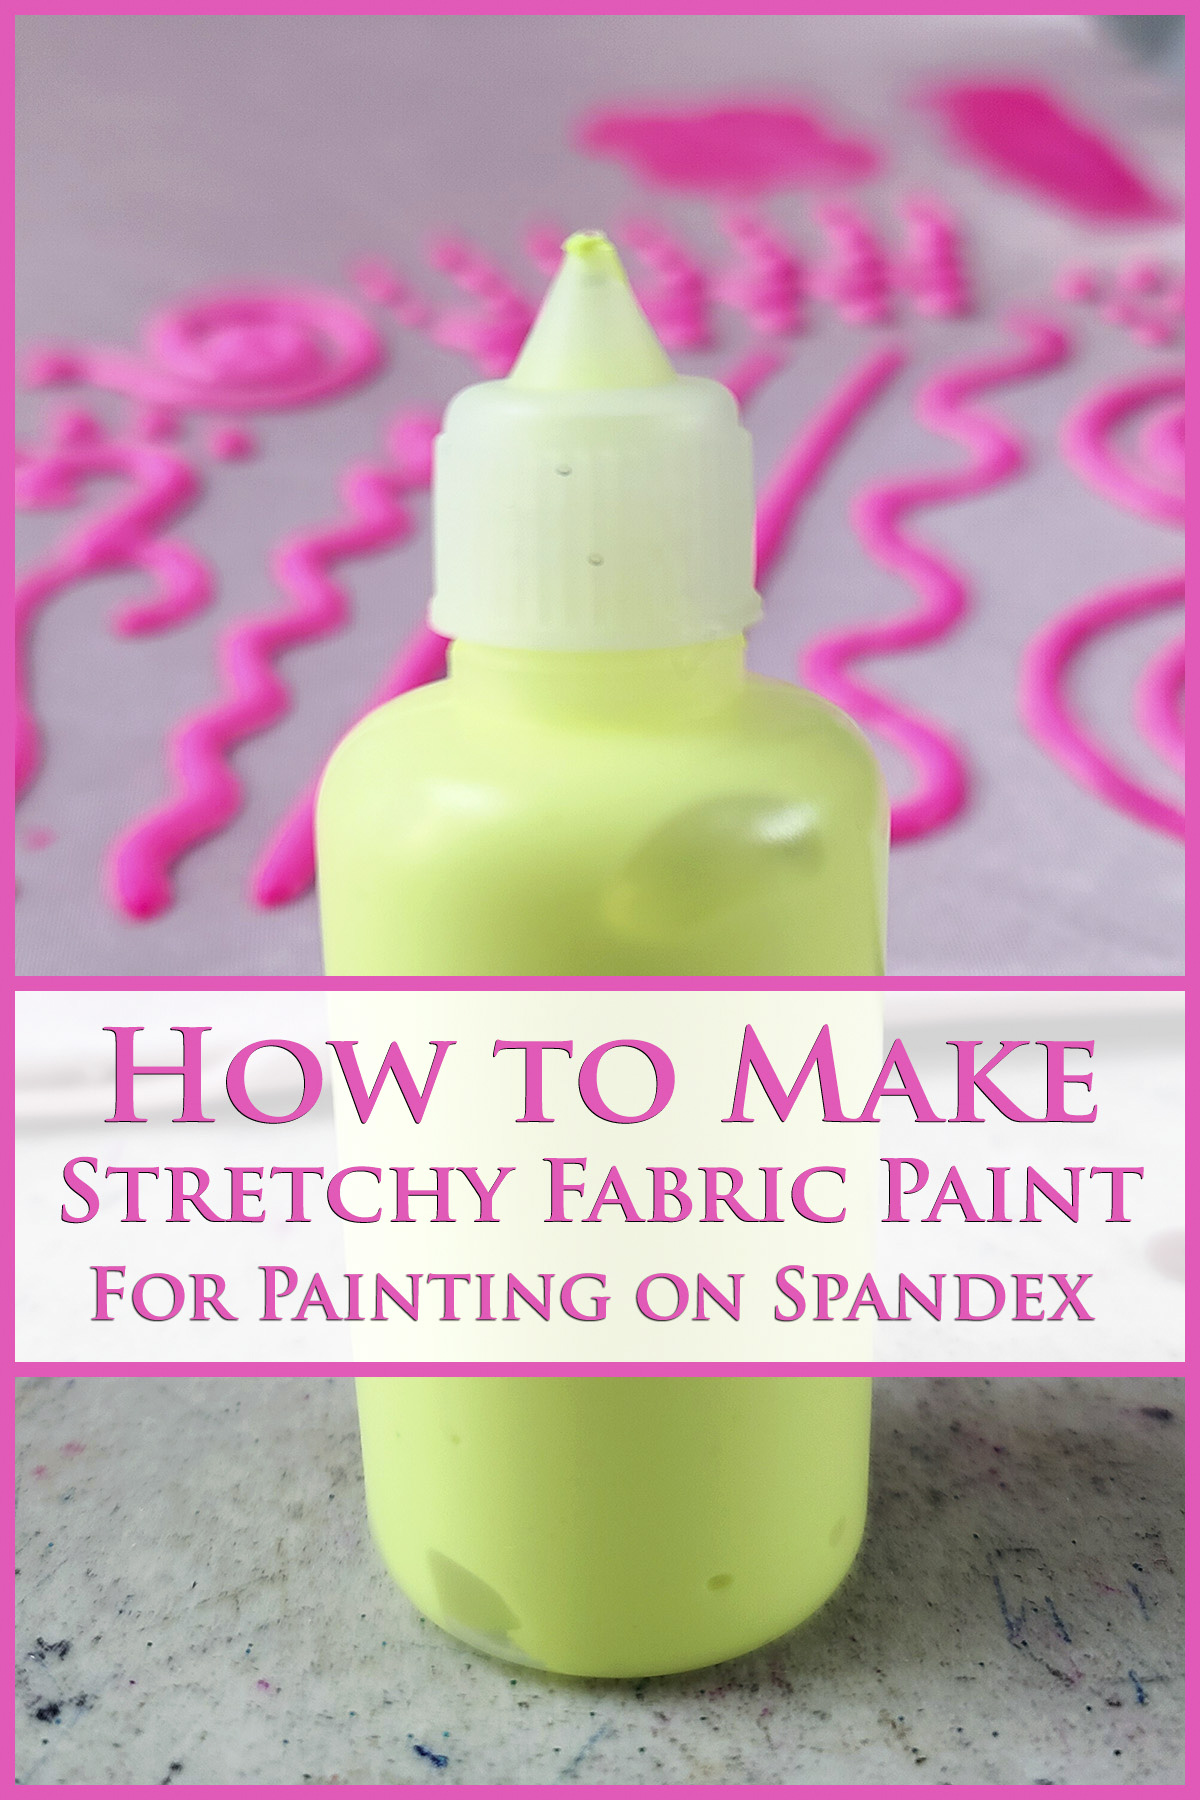 A small squeeze bottle of neon yellow stretch fabric paint in front of a piece of light pink fabric with dark pink fabric paint swirls all over it.  Text overlay says How to Make Stretchy Fabric paint for Painting on Spandex.